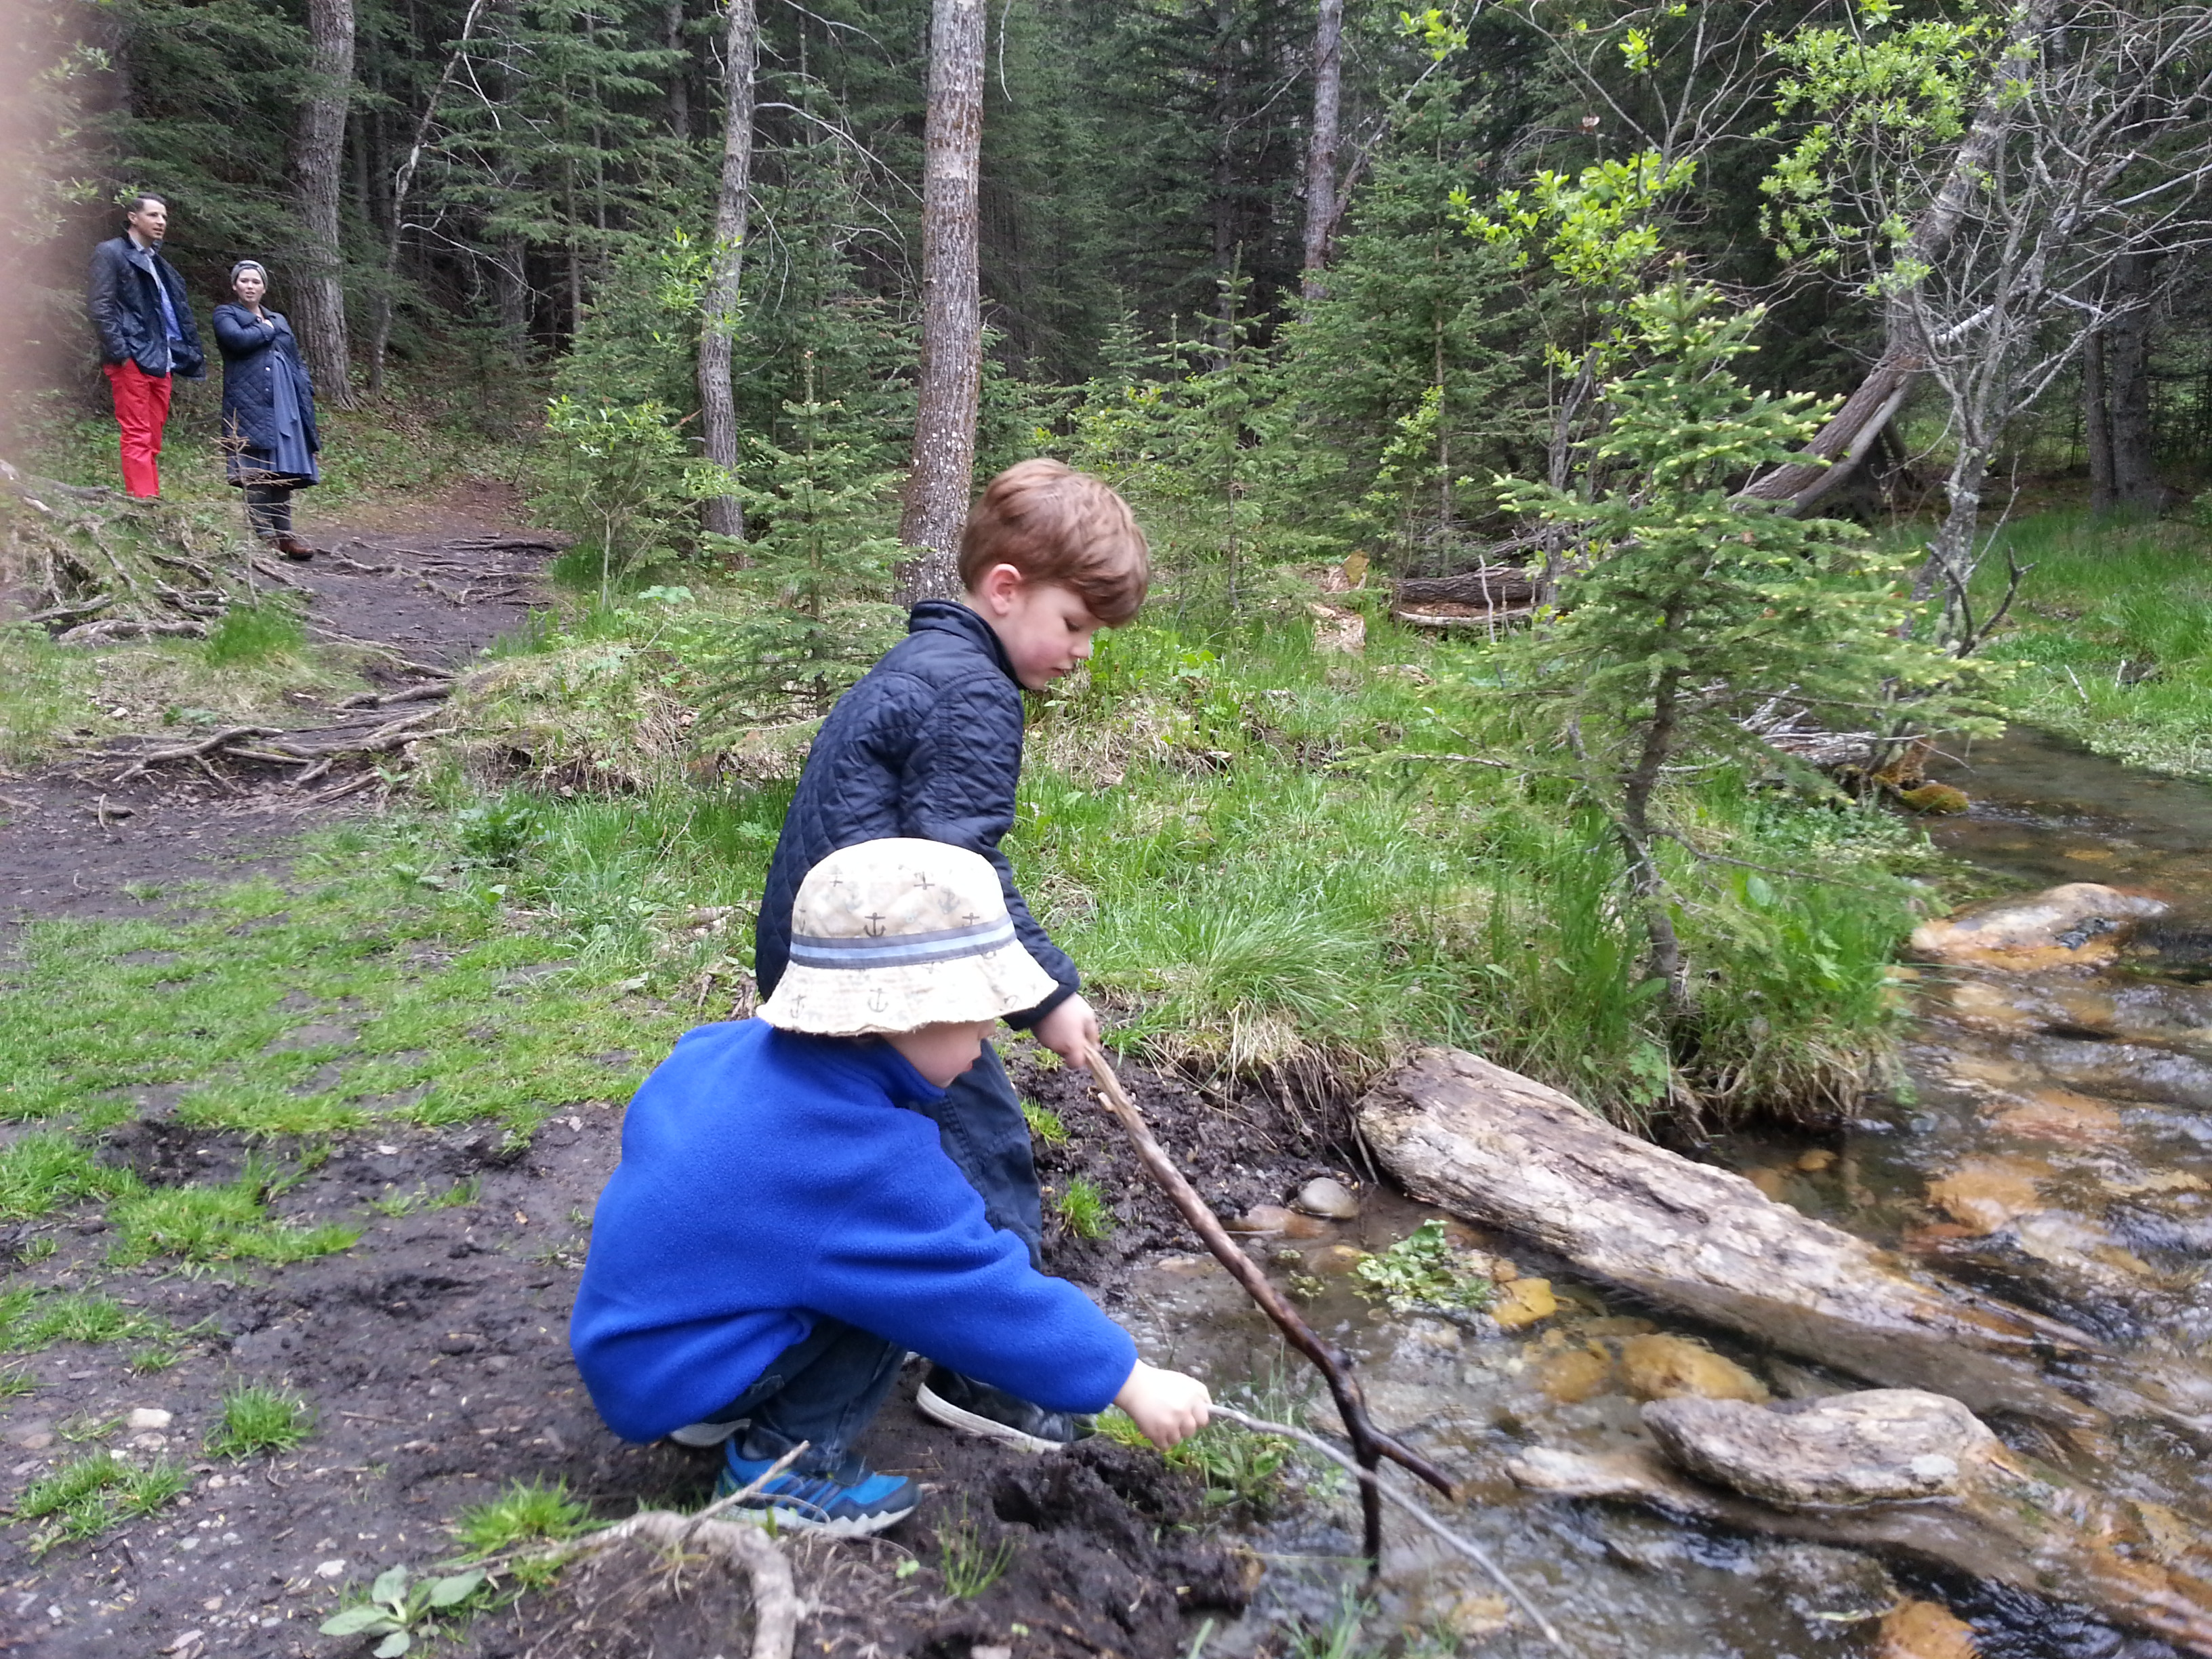 Max and Vinnie stopped whenever they could to find a twig or rock to throw.  This time they decided they needed to go fishing.